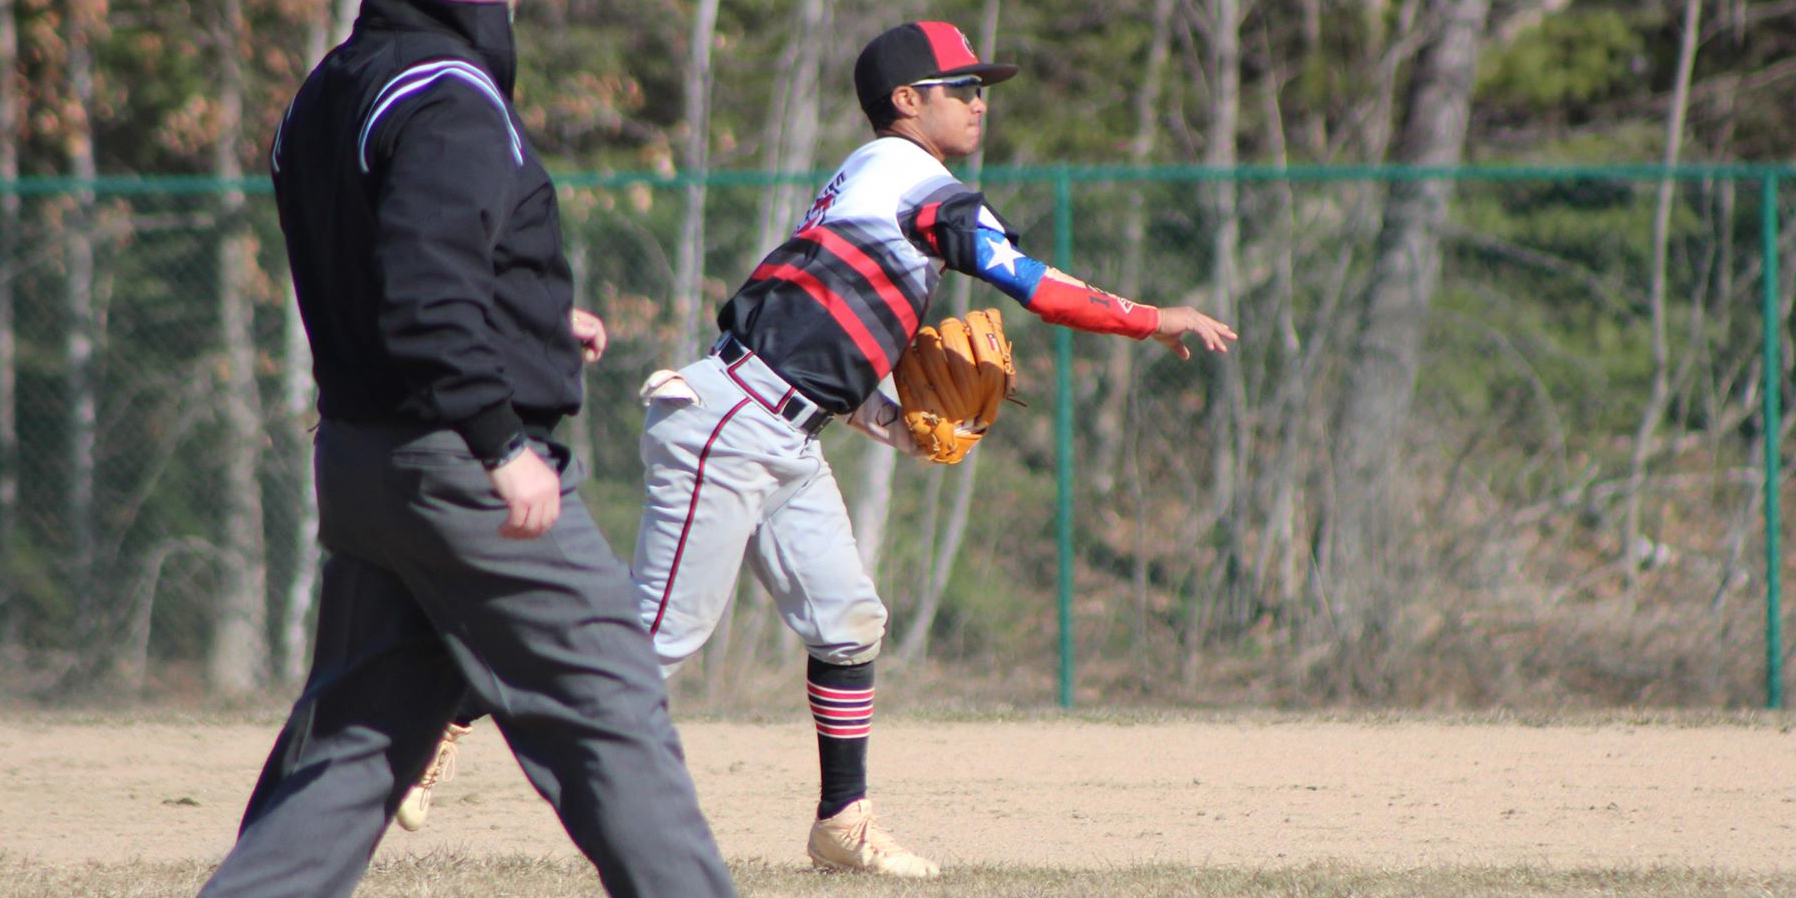 Baseball Falls to Castleton Twice in Twinbill